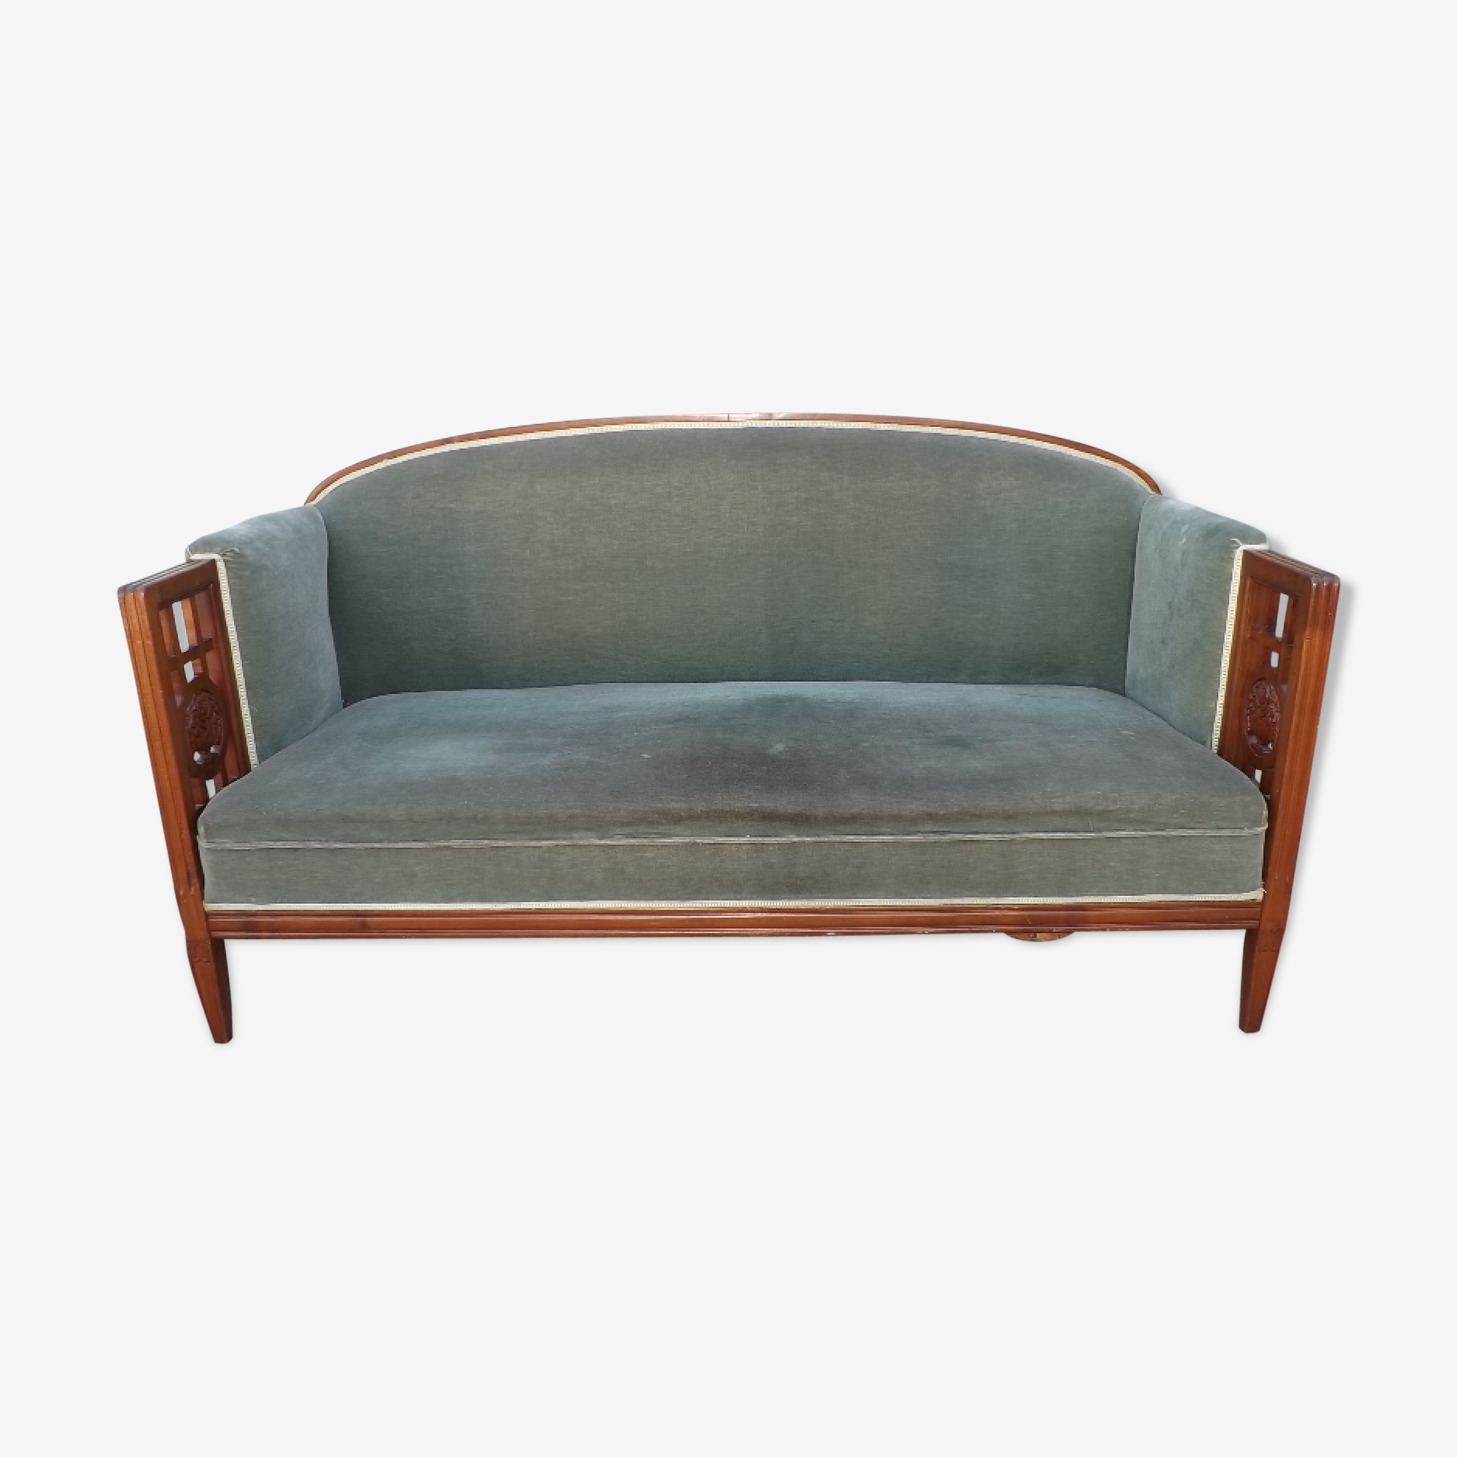 André GROULT (1884-1966) bench sofa in Cherry carved and sculpted Art Deco 1925